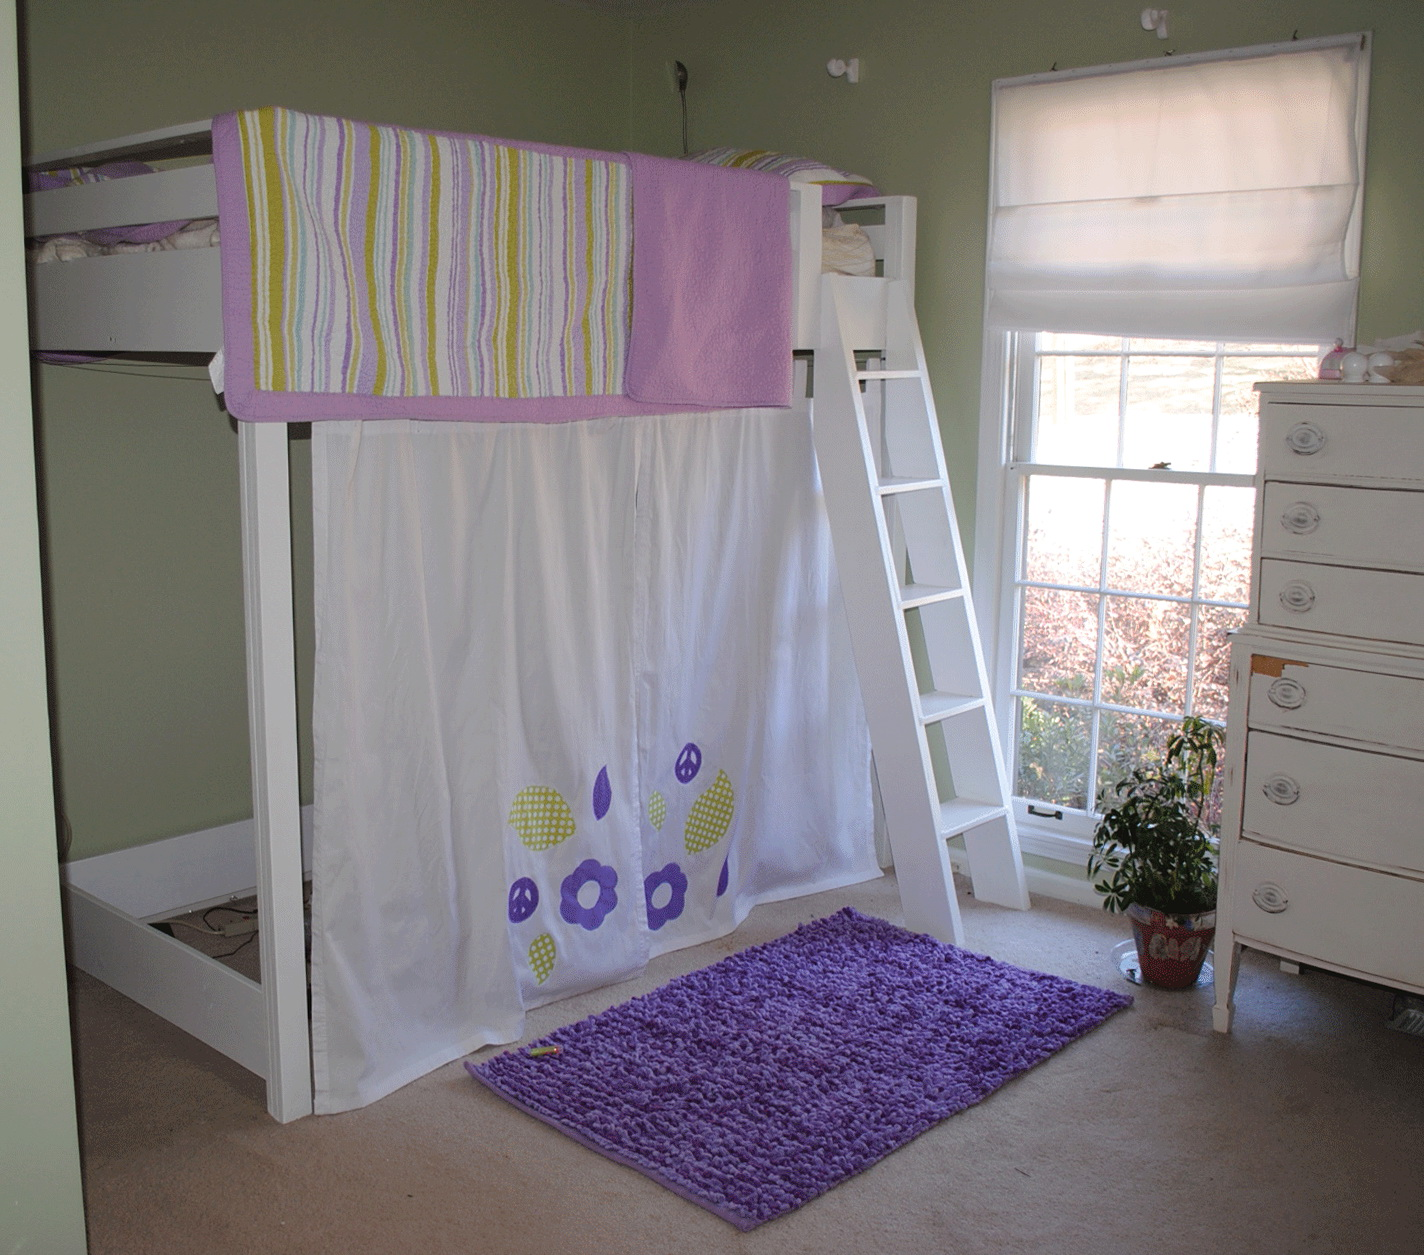 Bottom Bunk Bed Curtains Home Design Ideas